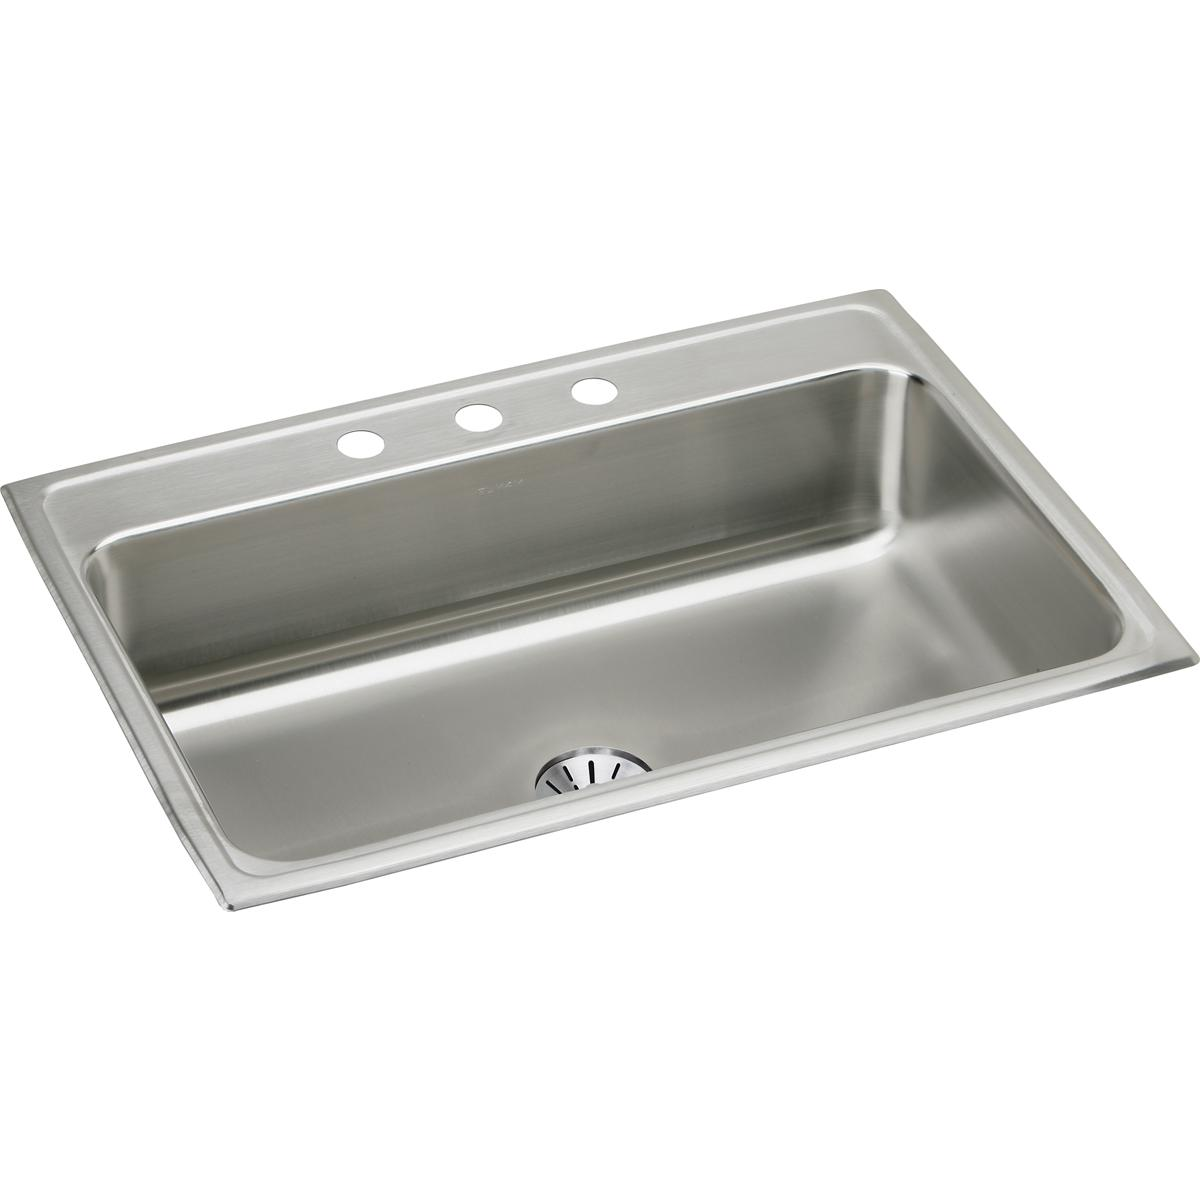 "Elkay Lustertone Classic Stainless Steel 31"" x 22"" x 7-5/8"", Single Bowl Drop-in Sink with Perfect Drain"